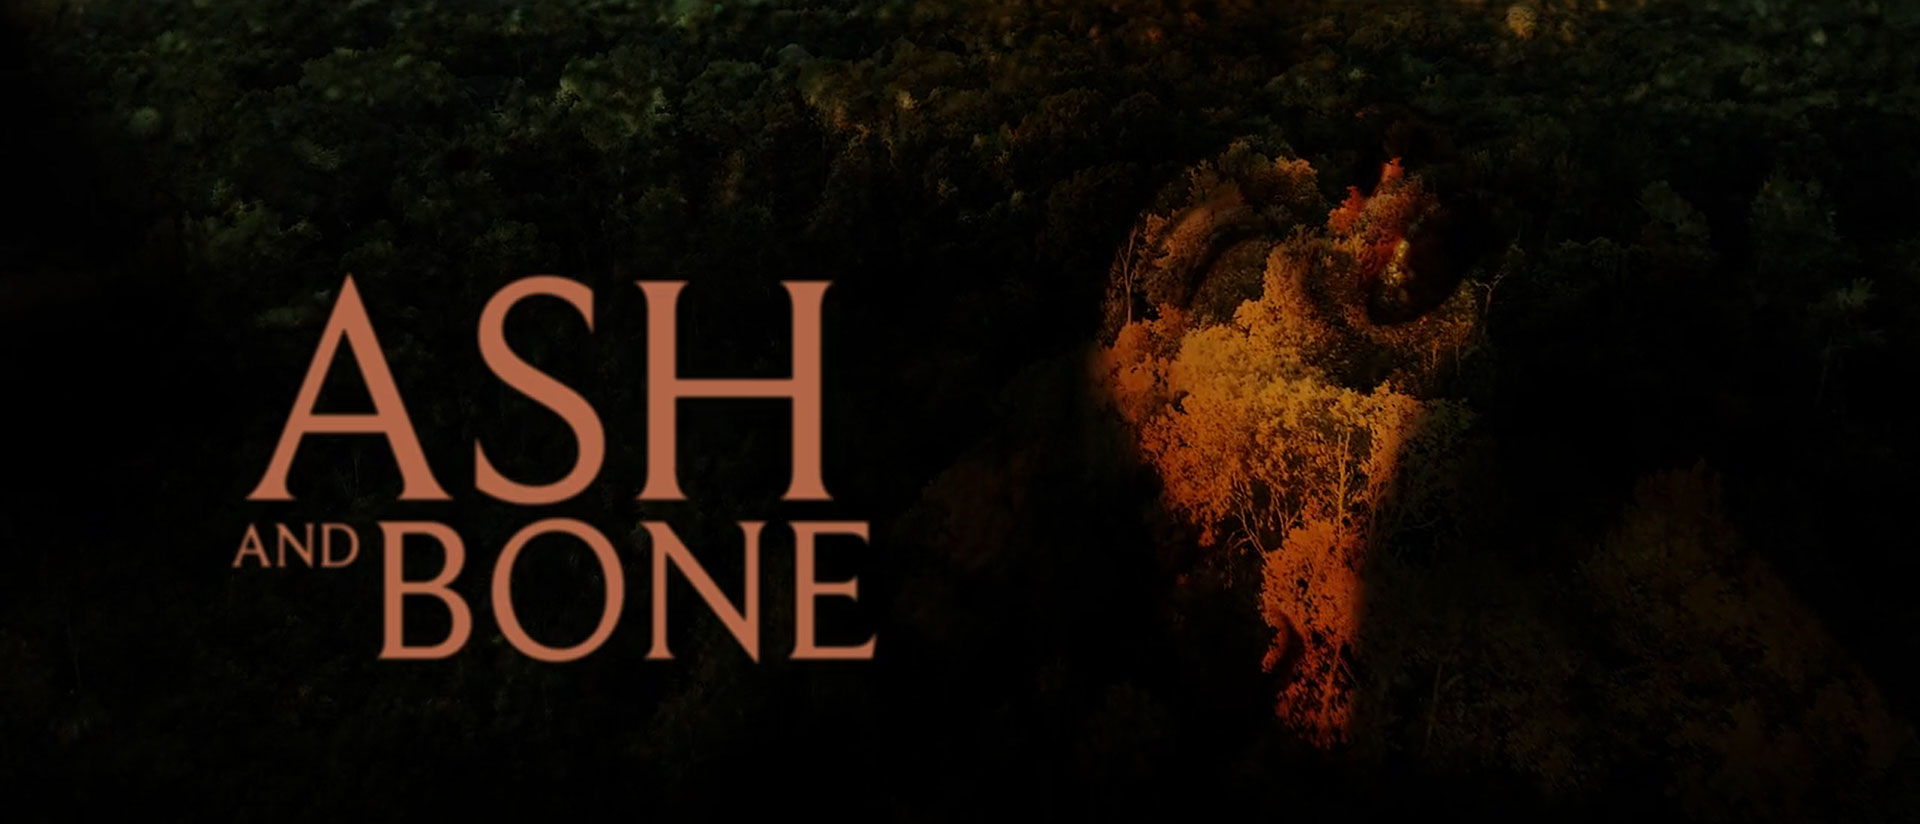 New trailer released for 'Ash and Bone'